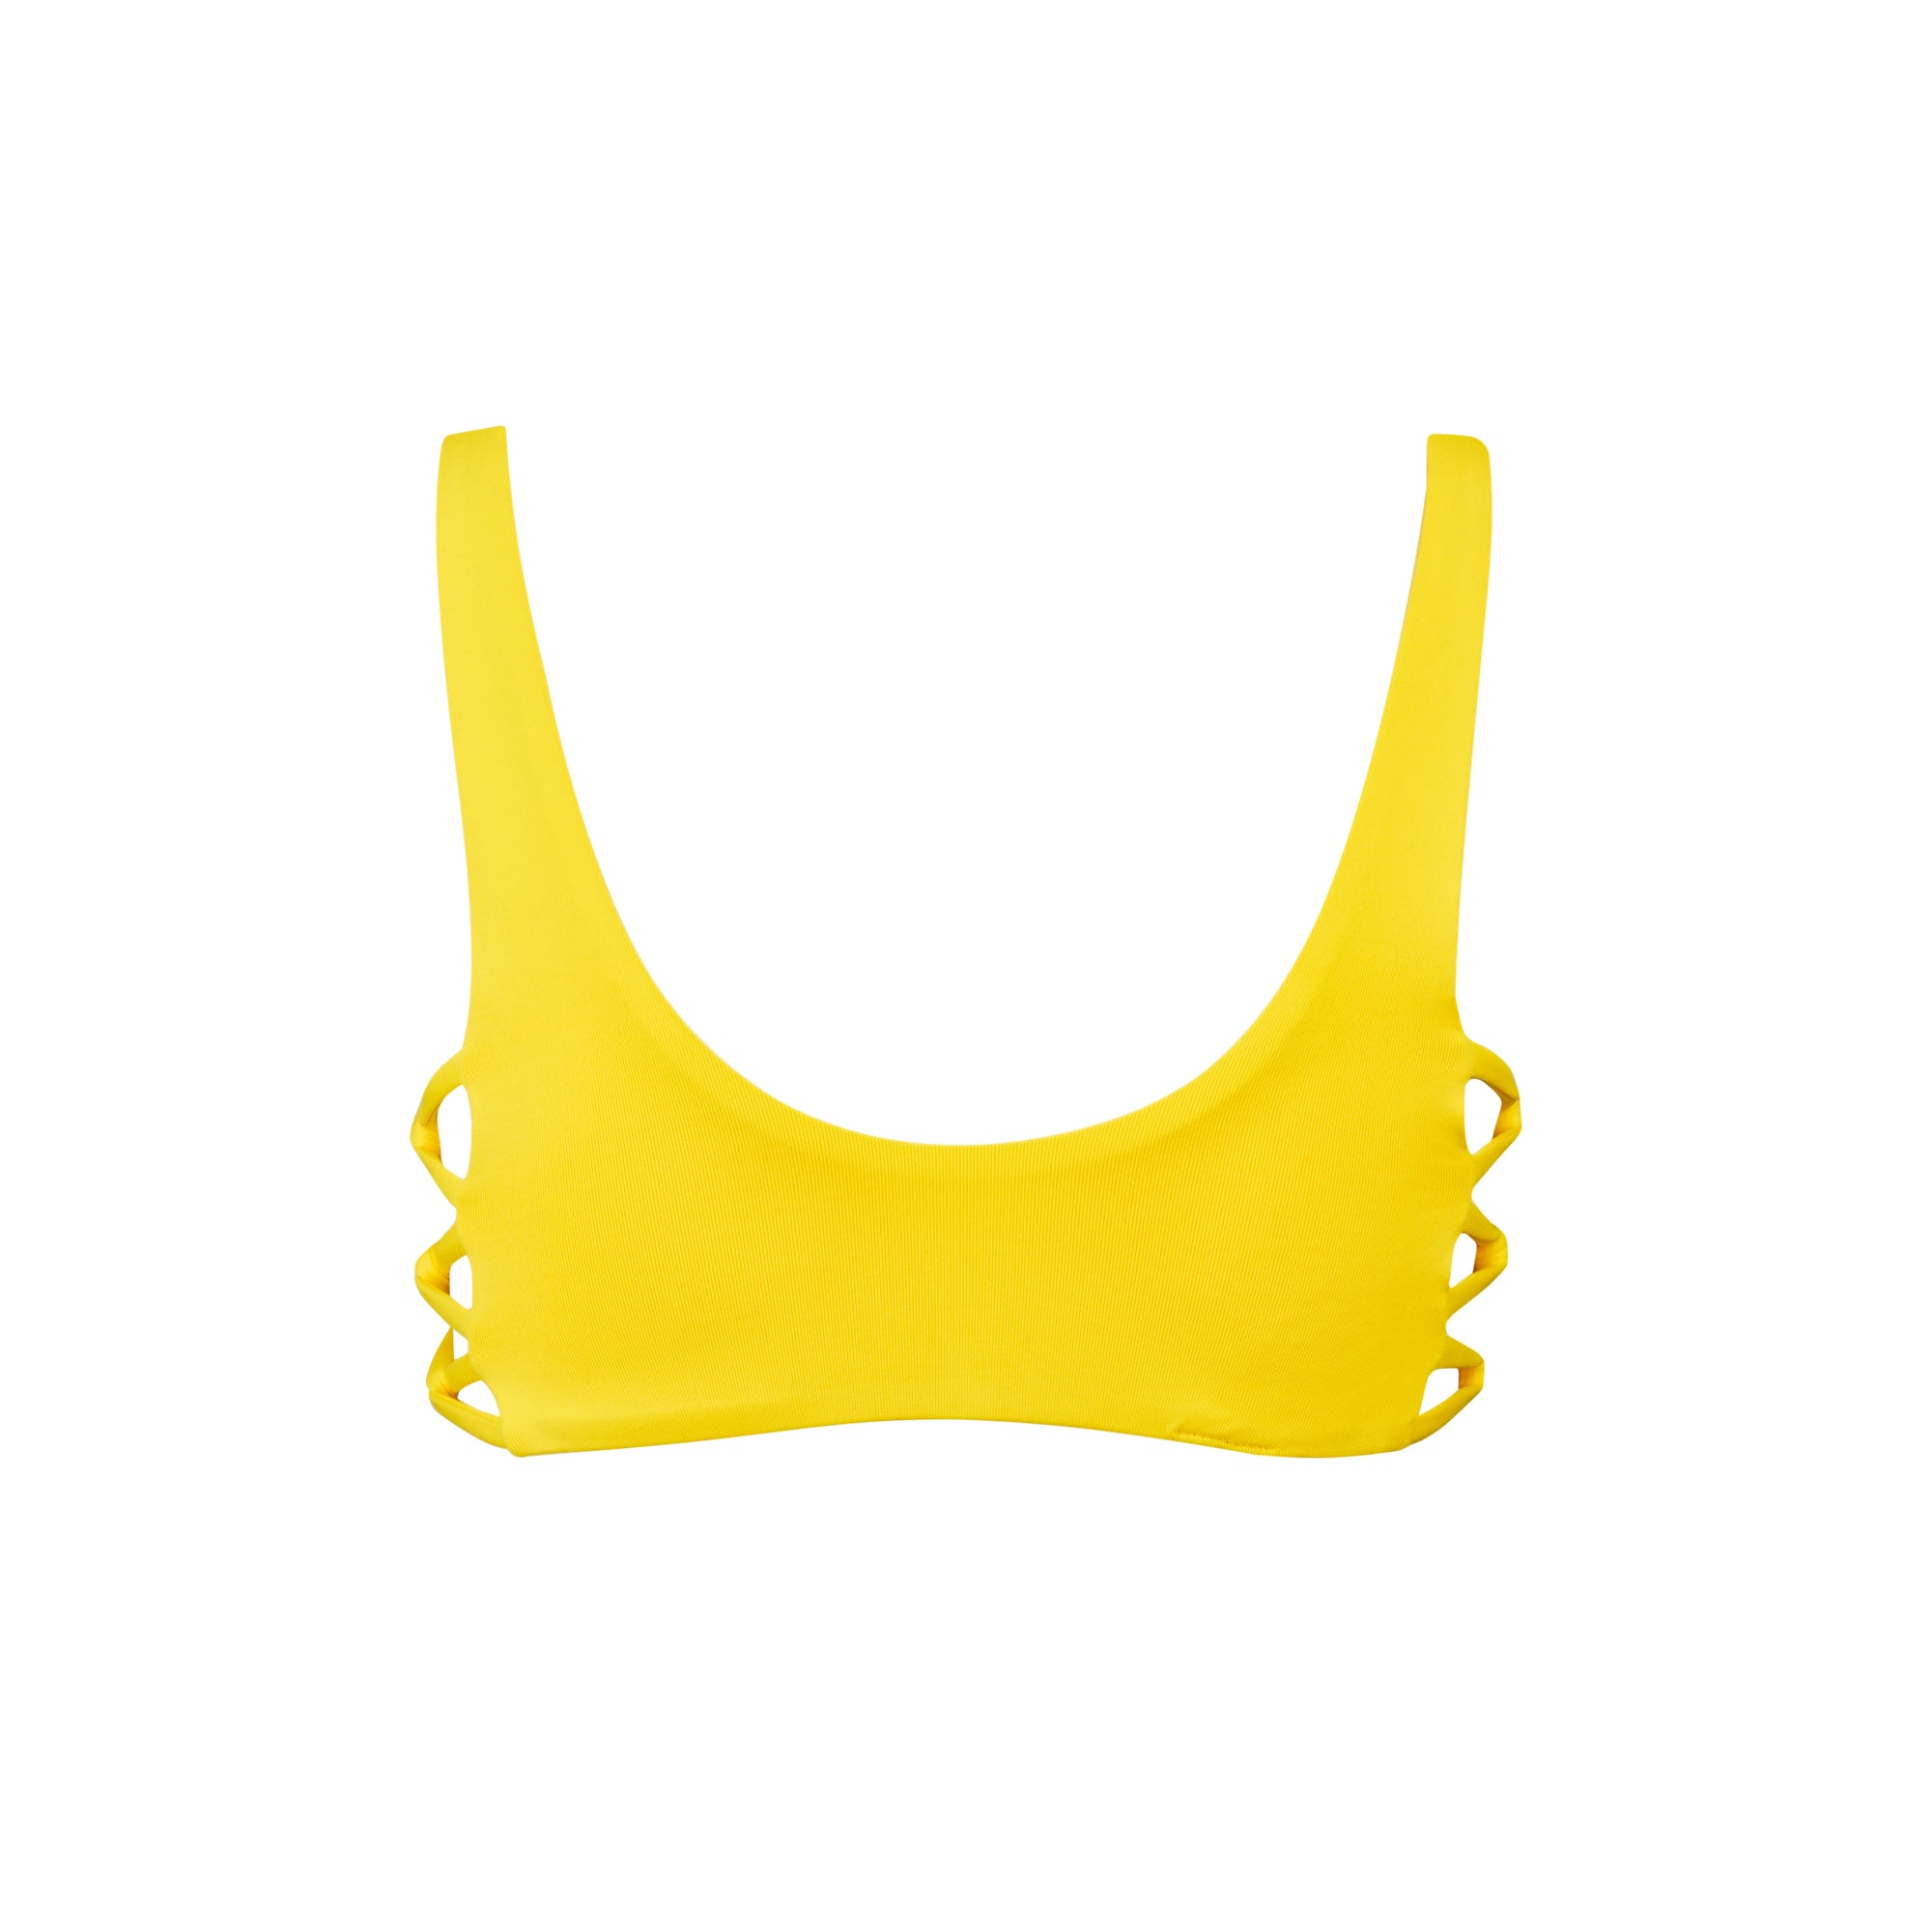 Fizz Bikini Top in Banana - Tuhkana Swimwear